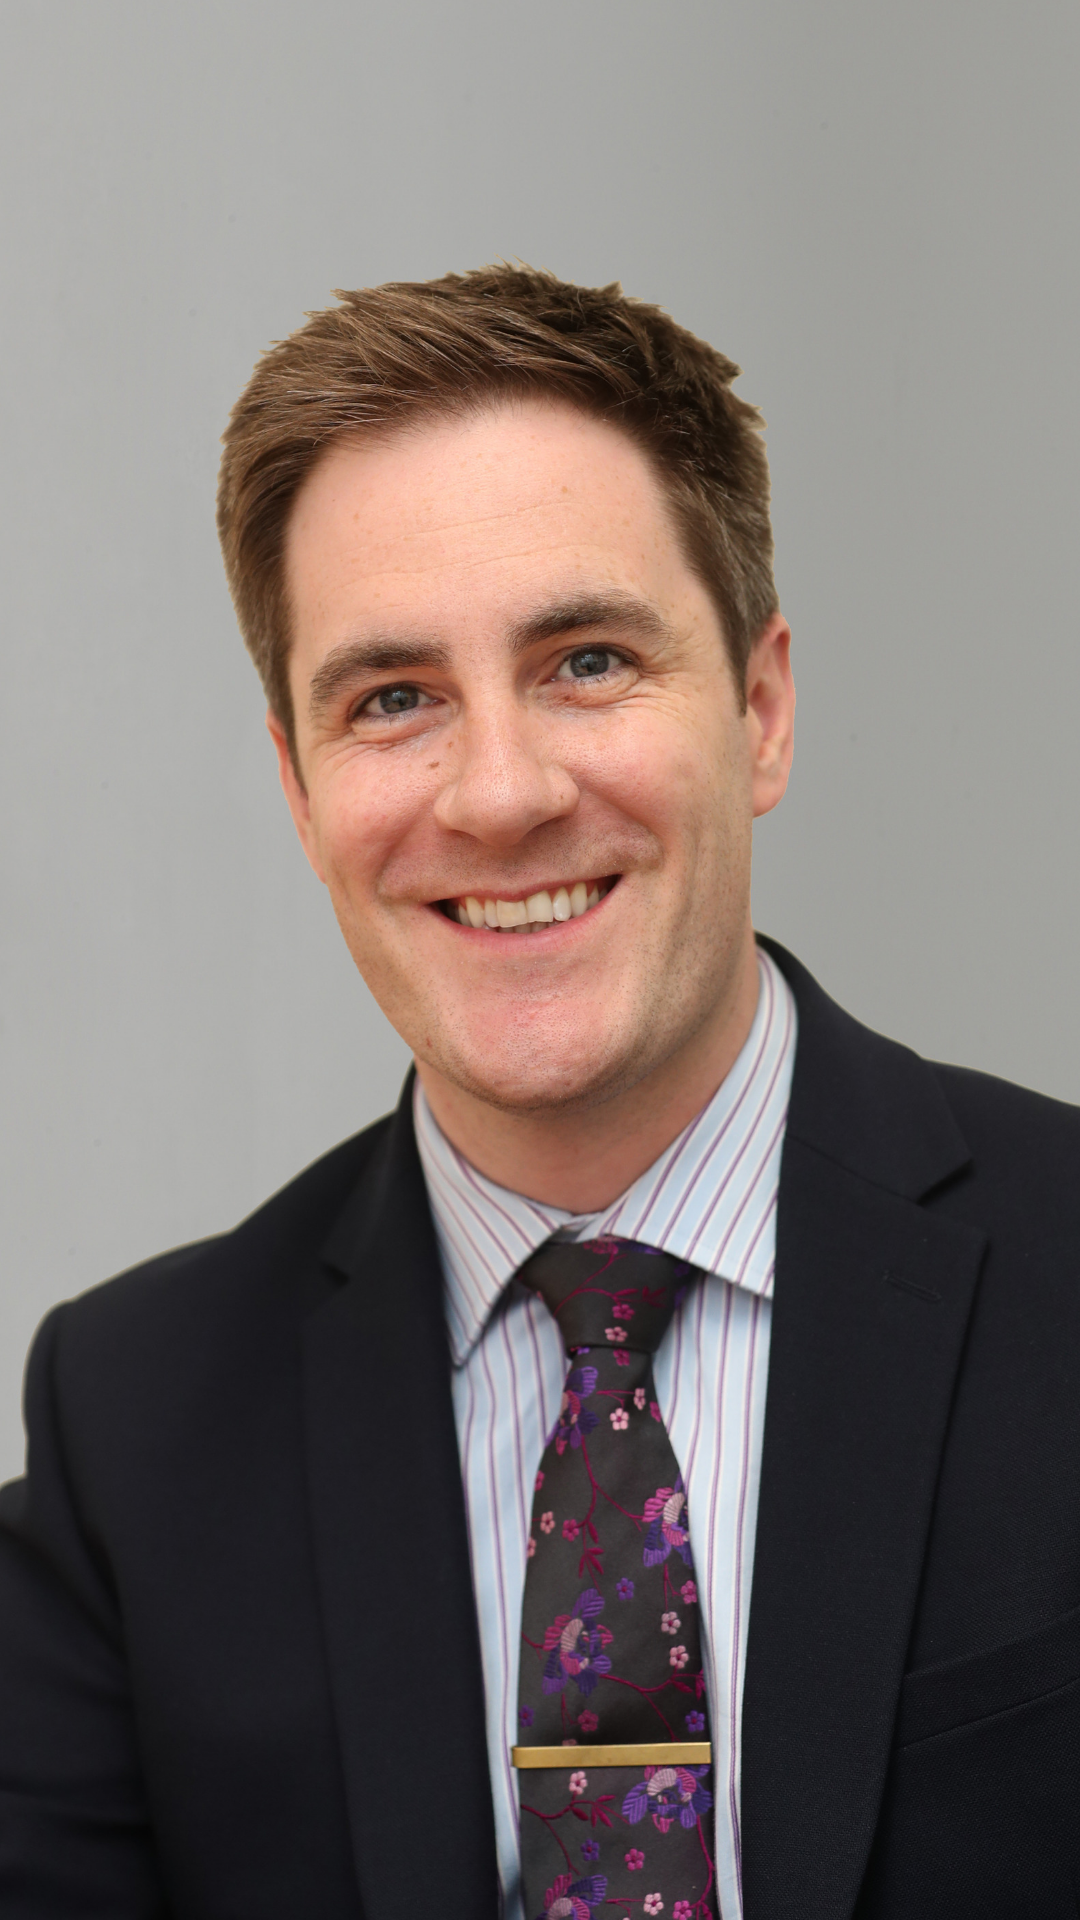 Matthew Billingsley Private Client Solicitor, Wills, Probate, Estate Planning, Dorset, Fellow of the Agricultural Law Association